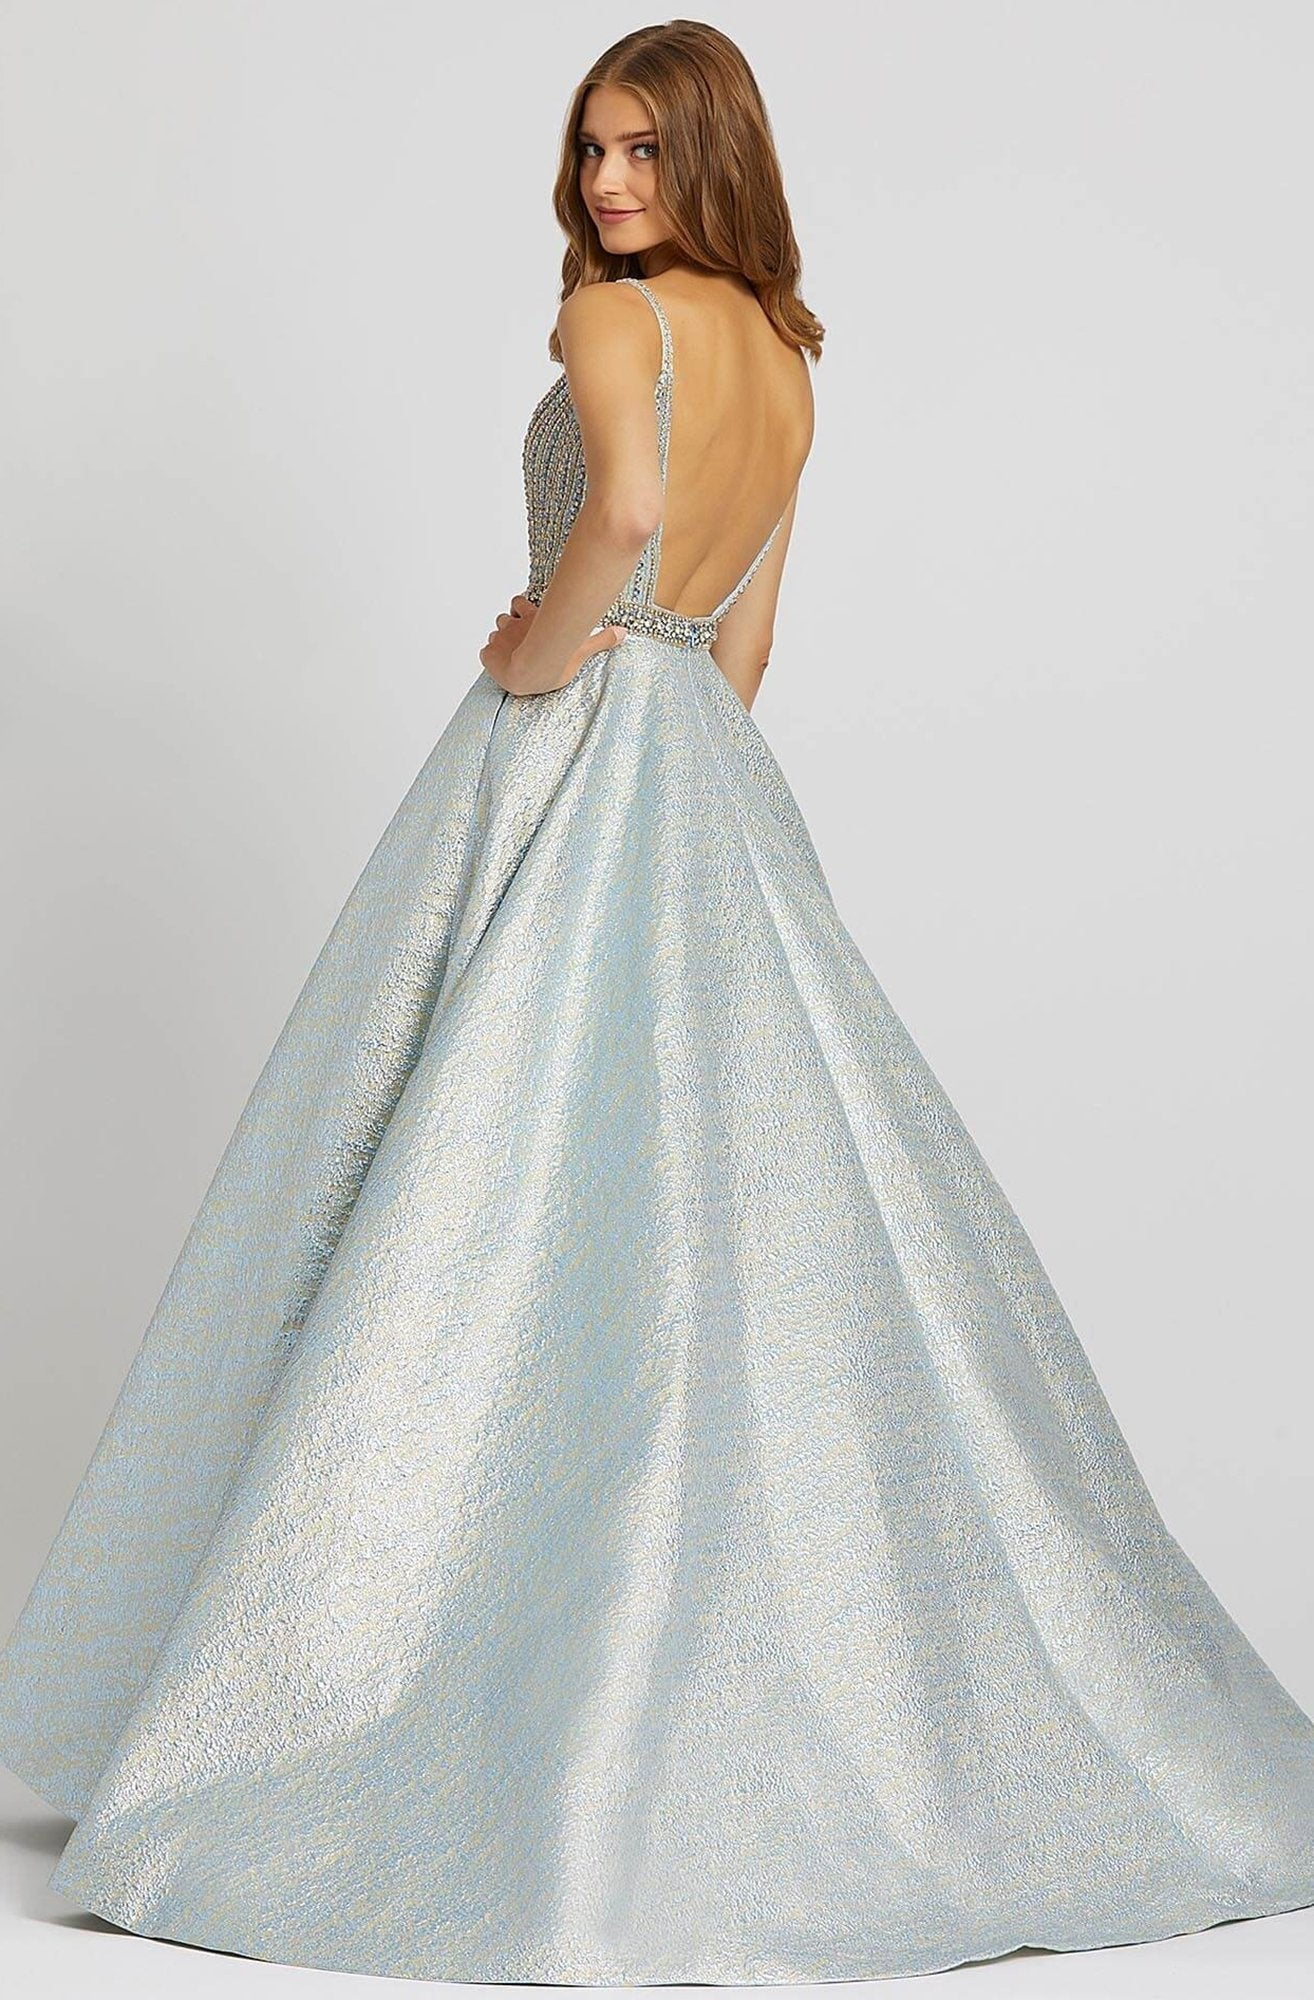 Mac Duggal Prom - 66701M Plunging Jewel-Strewn Metallic Ballgown In Blue